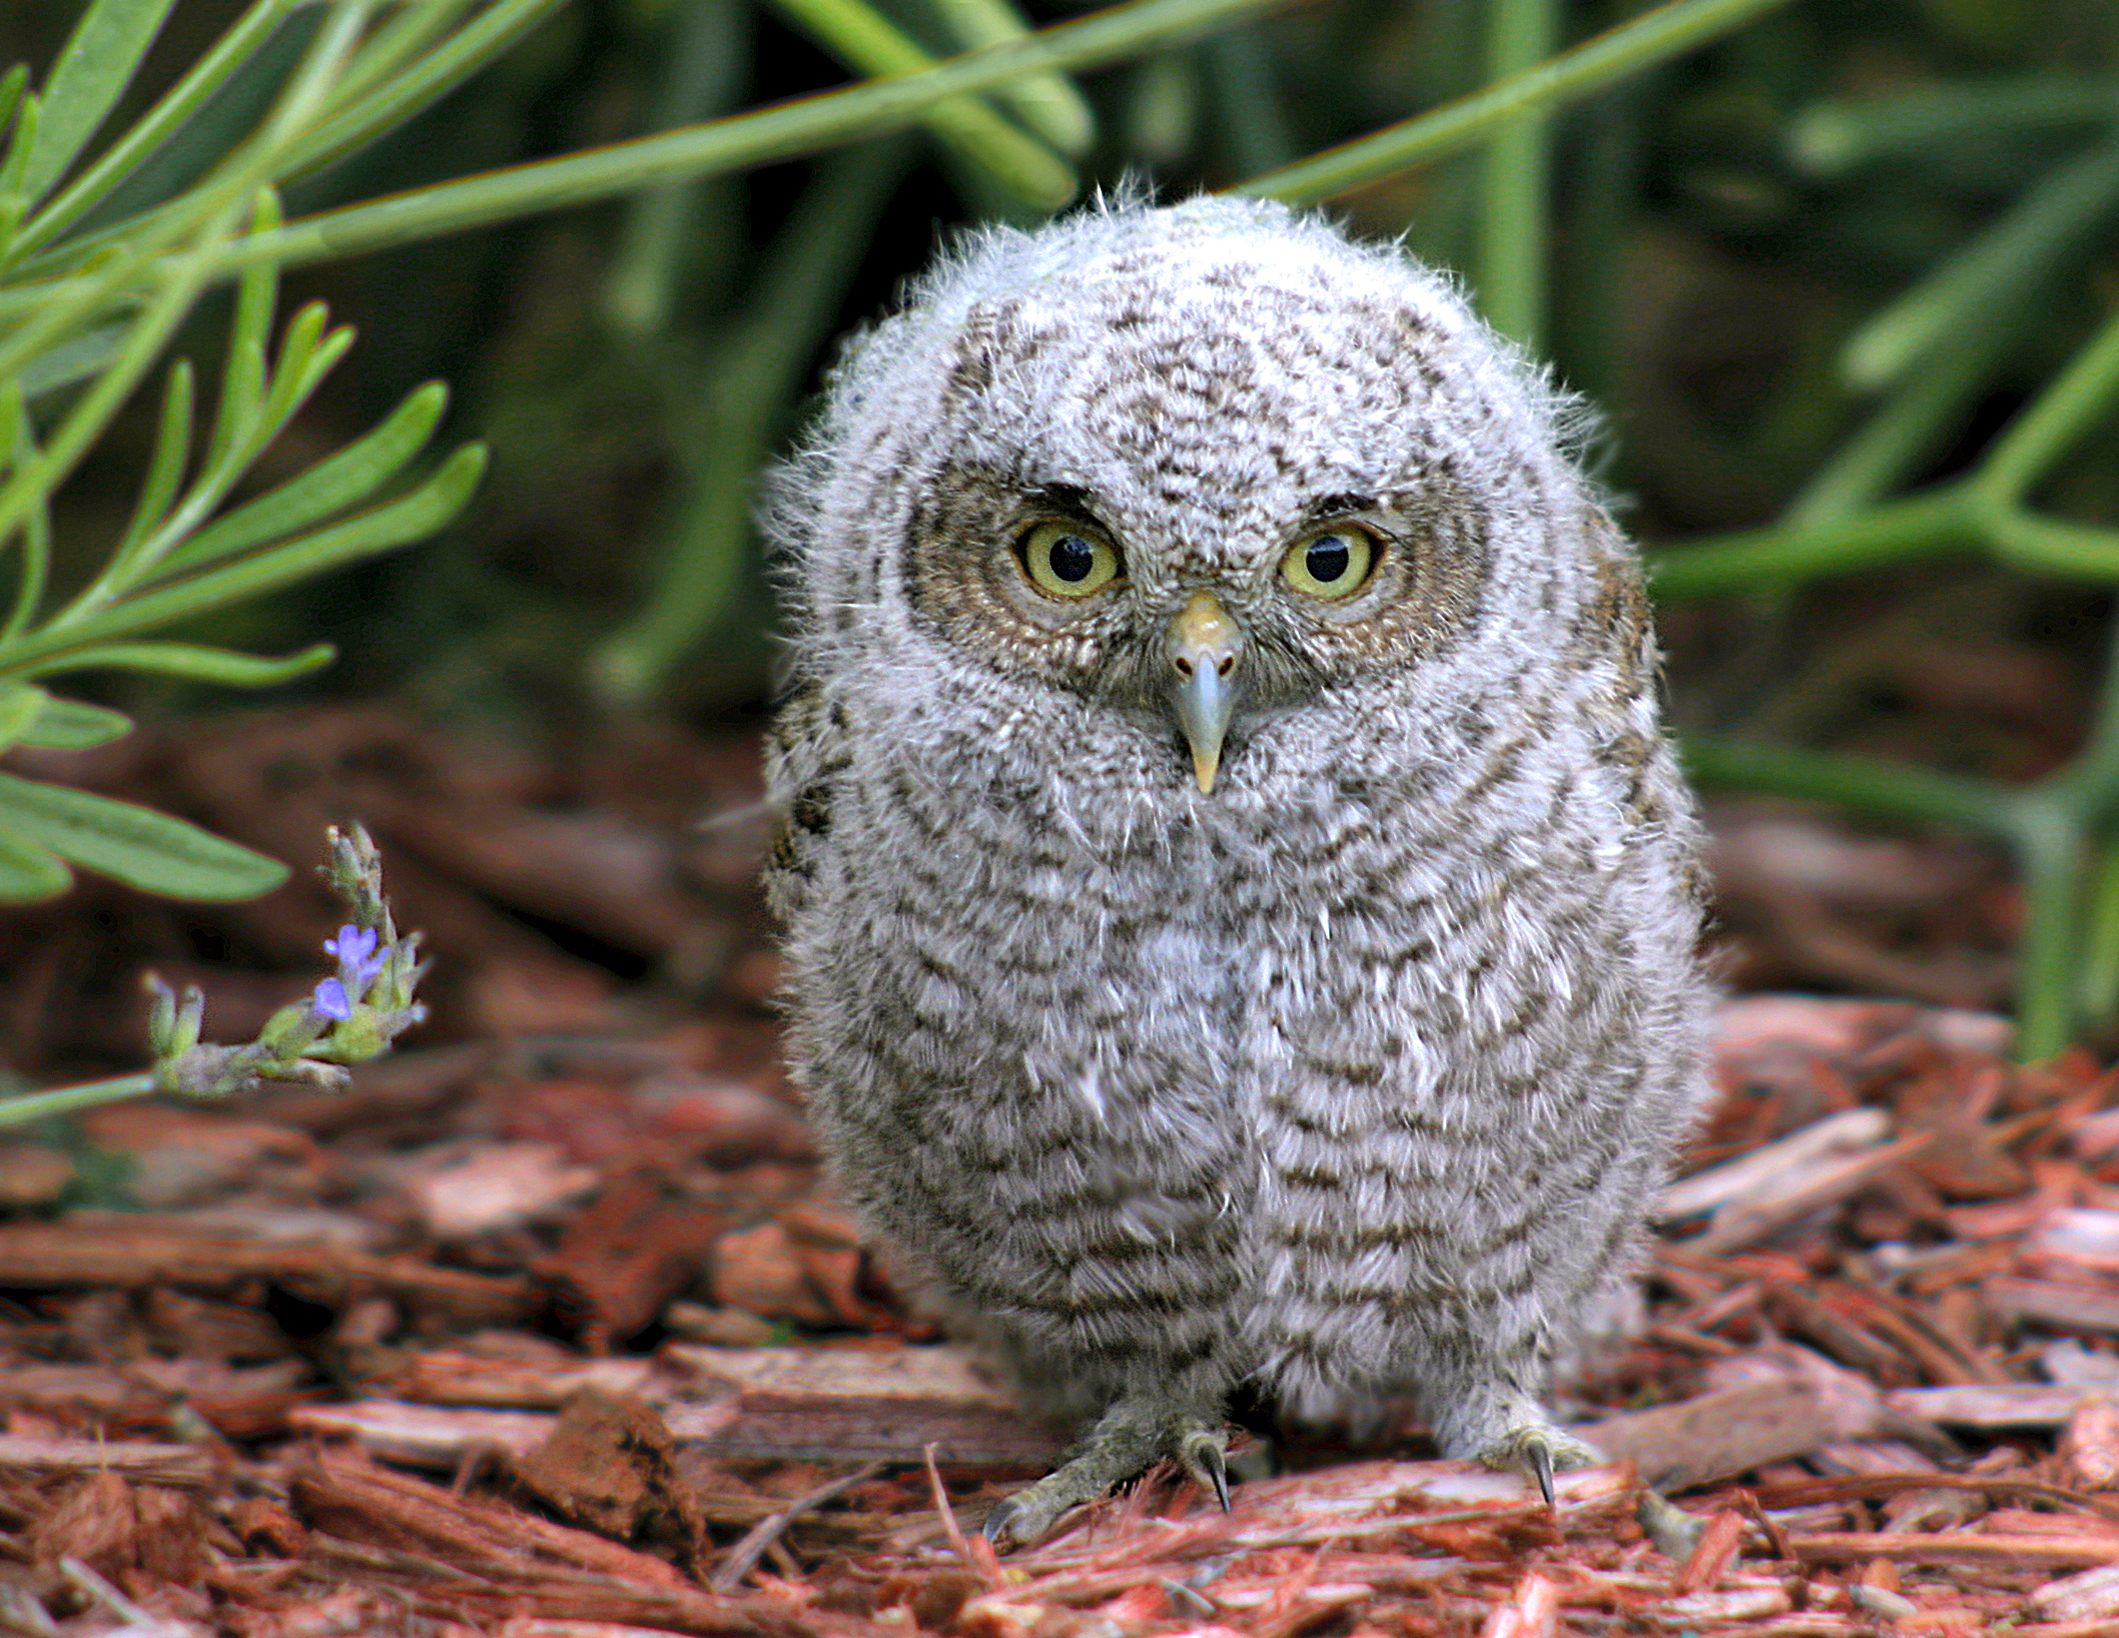 Cute Baby Screech Owl in Birds and Blooms Online | naturetime